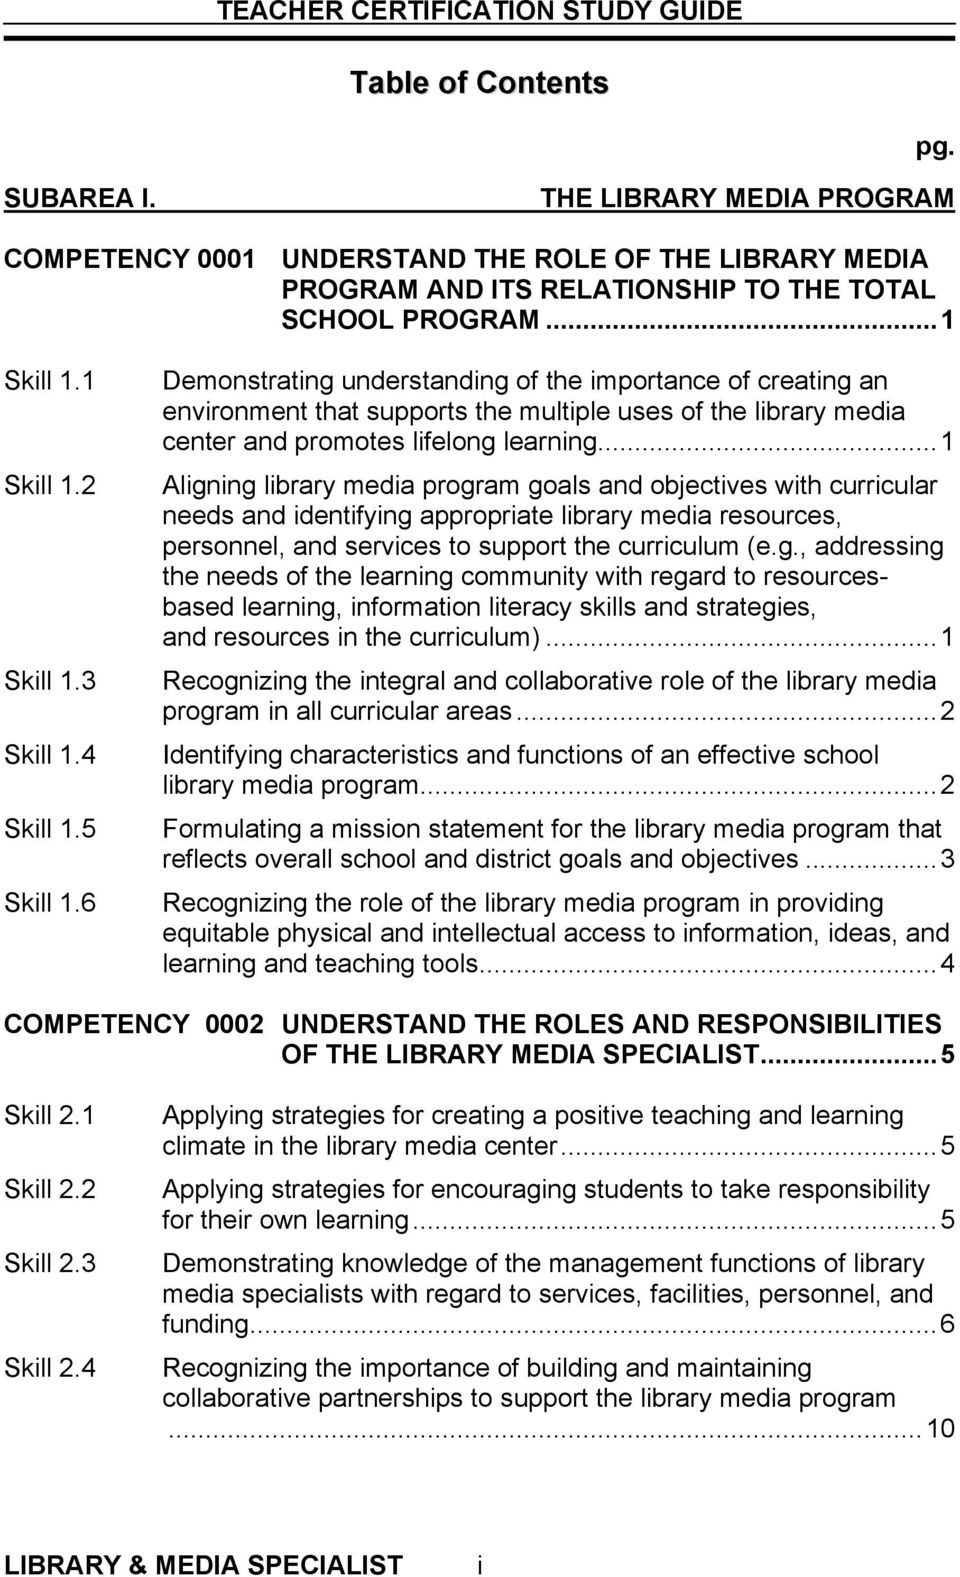 ..1 Aligning library media program goals and objectives with curricular needs and identifying appropriate library media resources, personnel, and services to support the curriculum (e.g., addressing the needs of the learning community with regard to resourcesbased learning, information literacy skills and strategies, and resources in the curriculum).